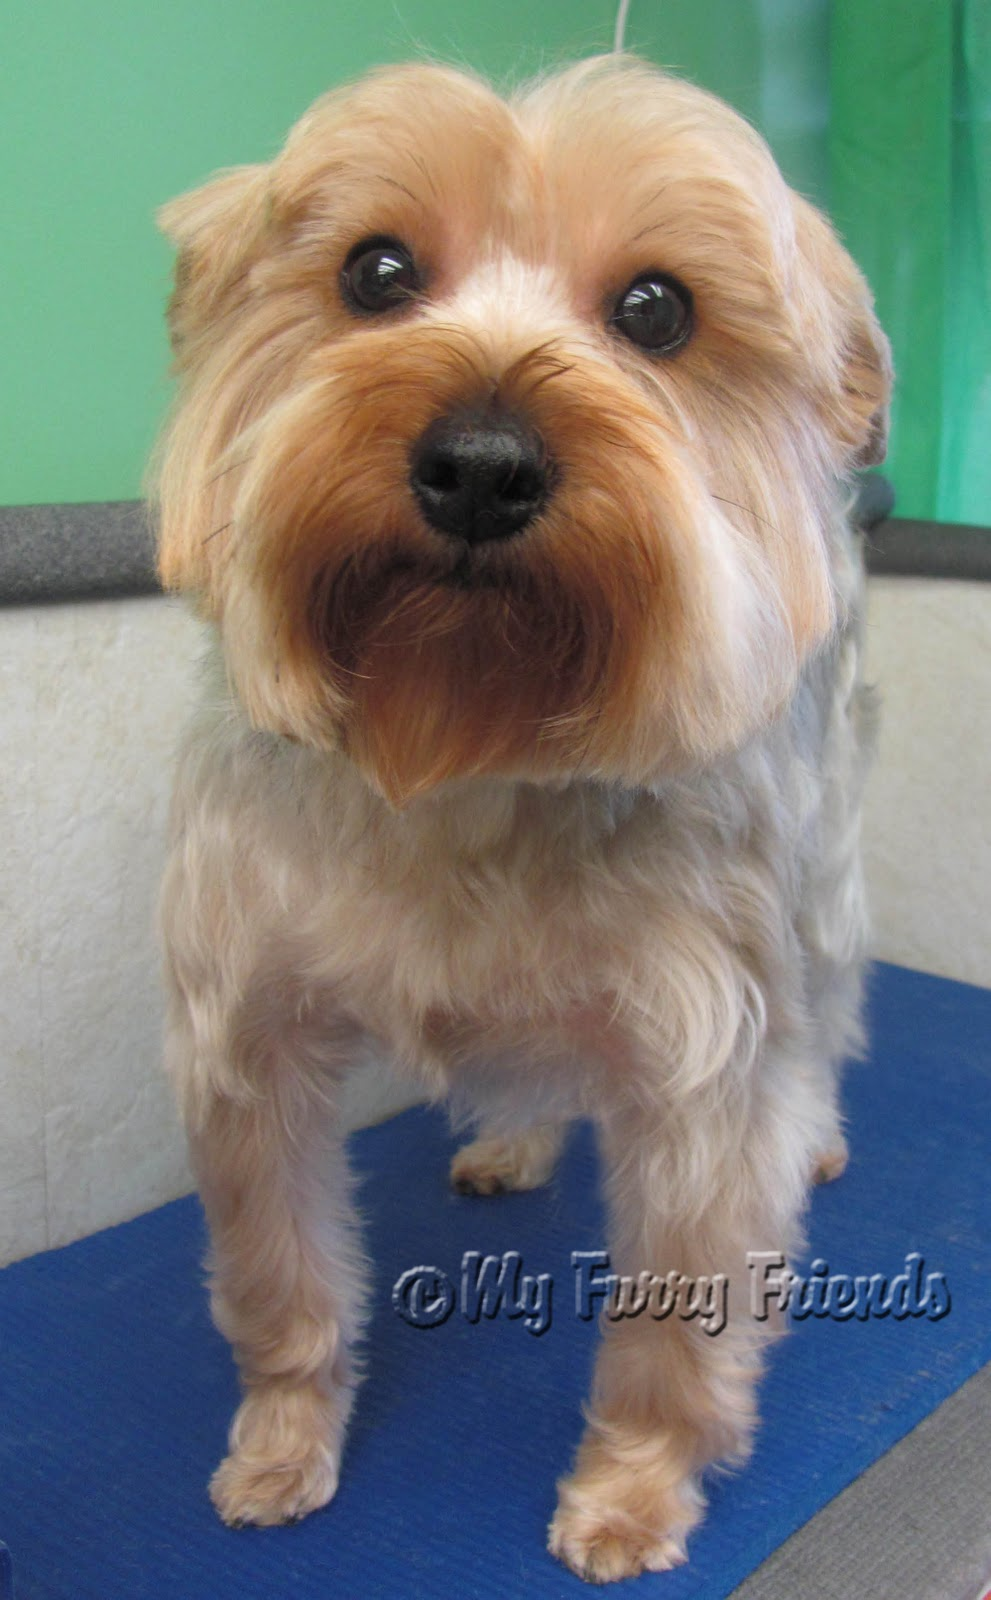 Pet Grooming The Good The Bad The Furry Yorkie Day